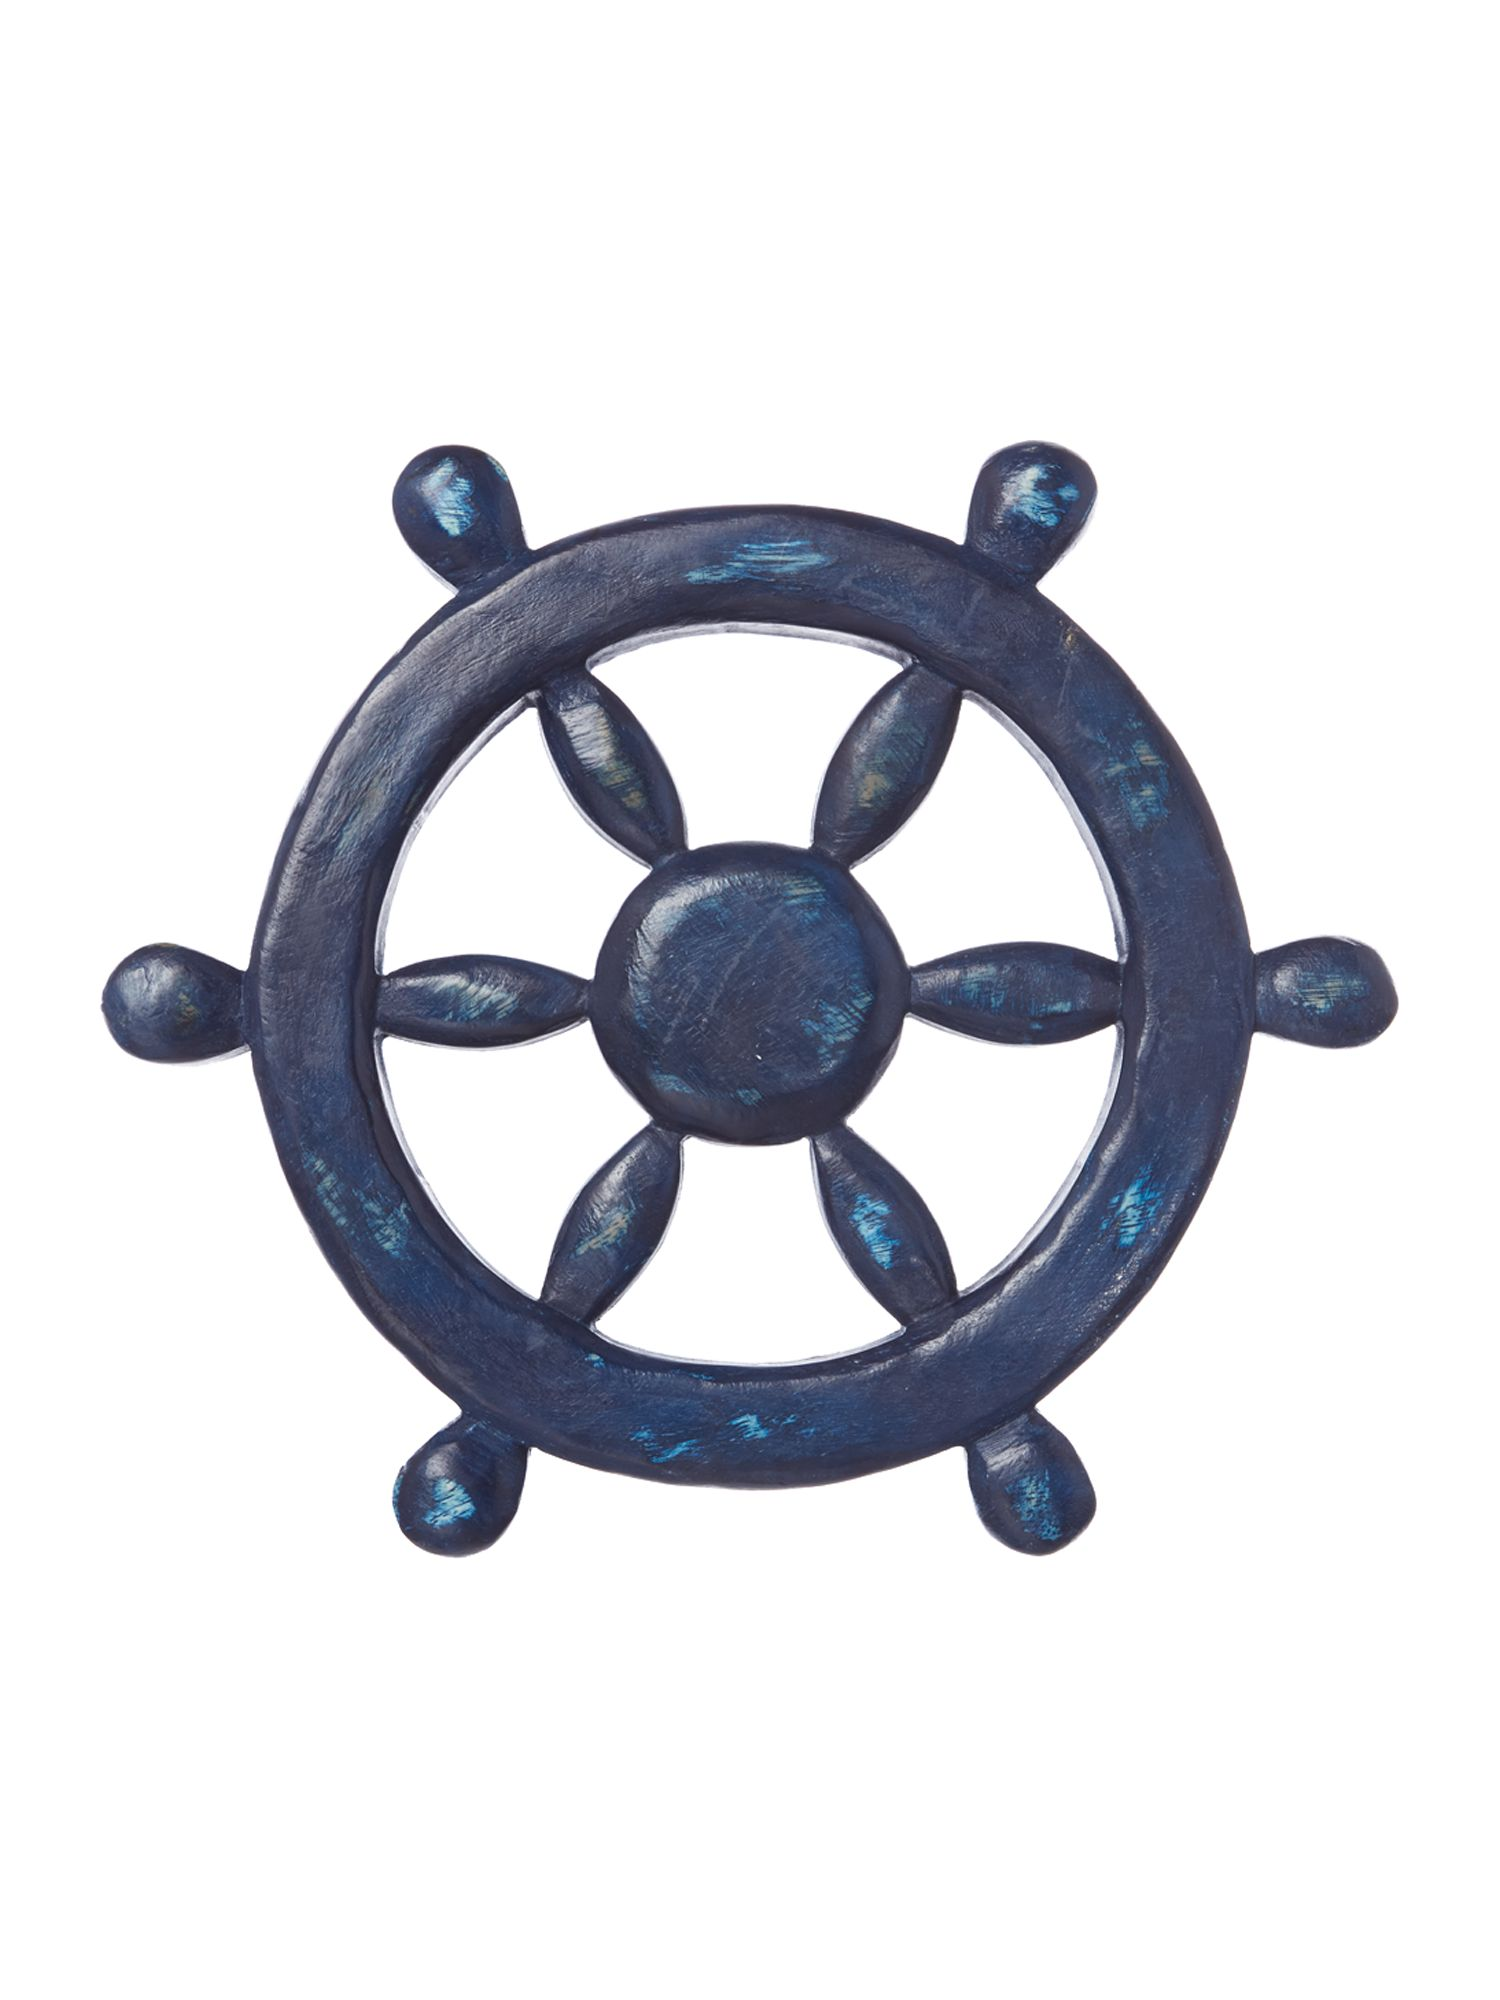 Wooden ships wheel ornament